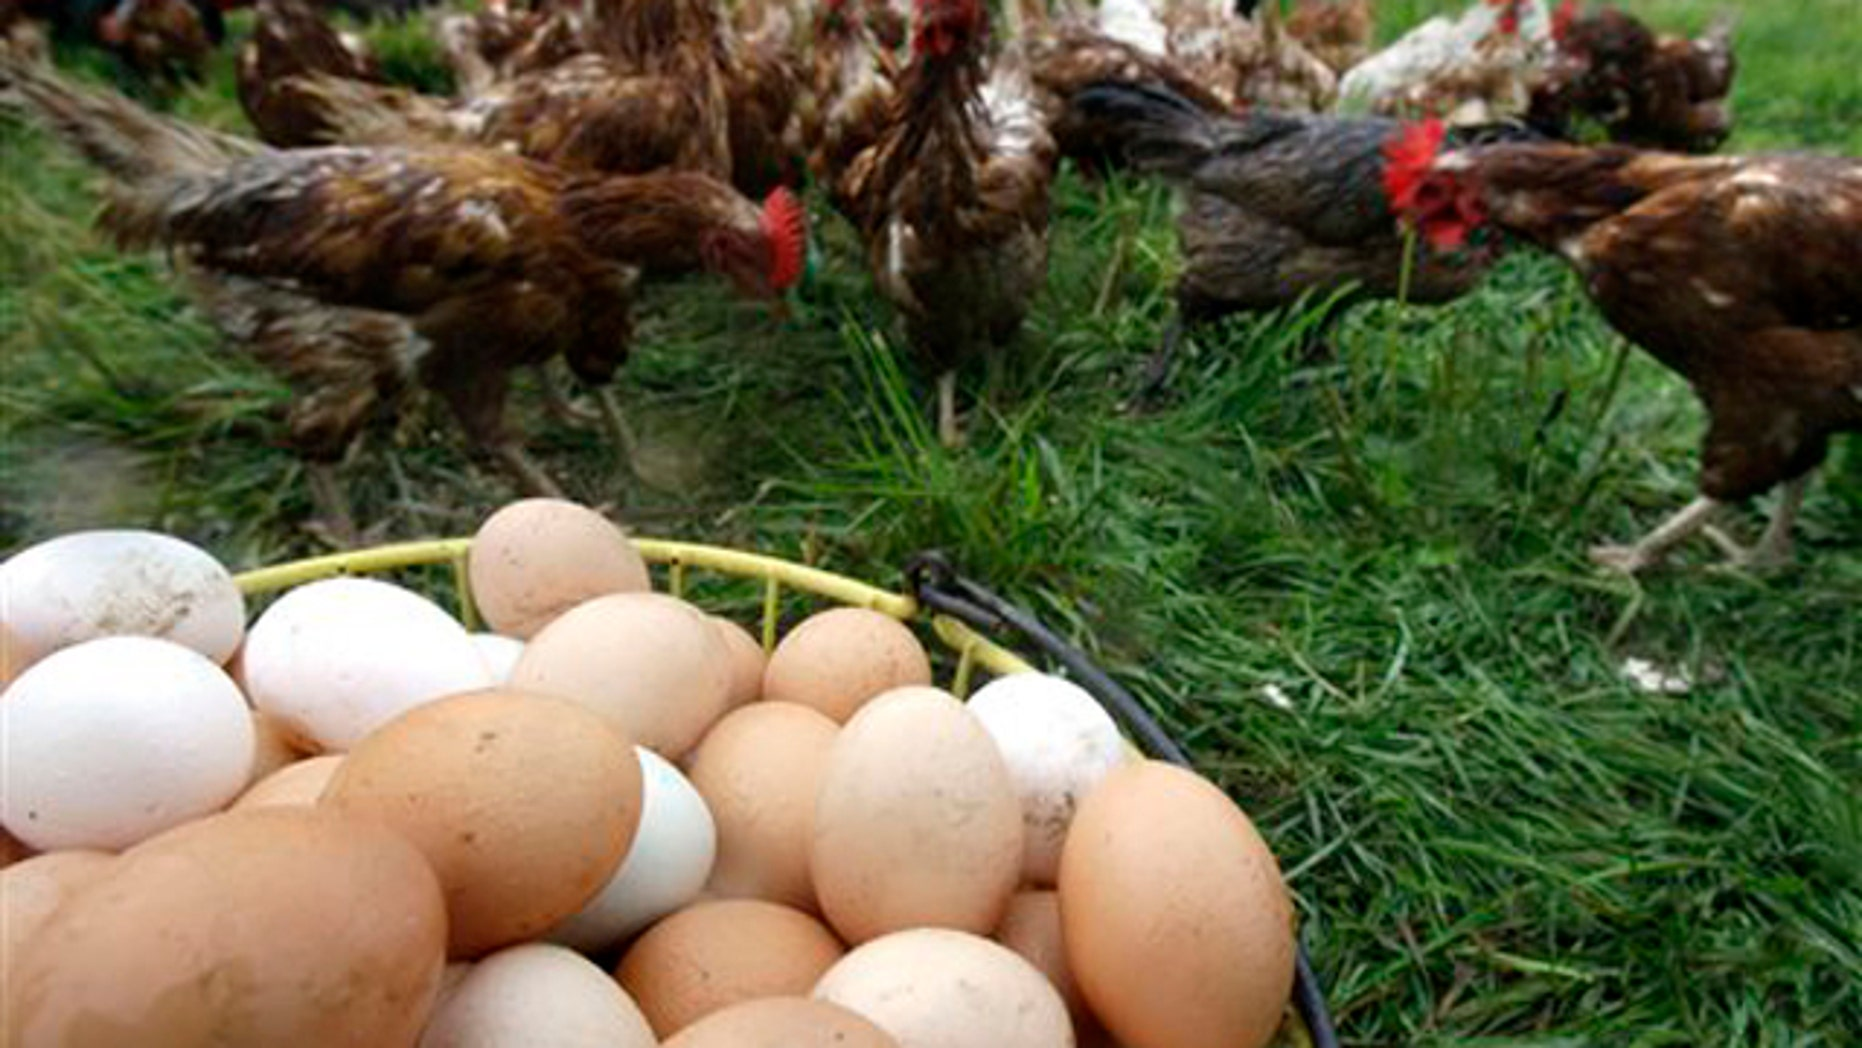 Chickens gather near a basket of freshly gathered eggs at Pete & Jen's Backyard Birds, a small organic farm in Concord, Mass., Aug. 23. The farm has not been affected by the egg recall. (AP Photo)